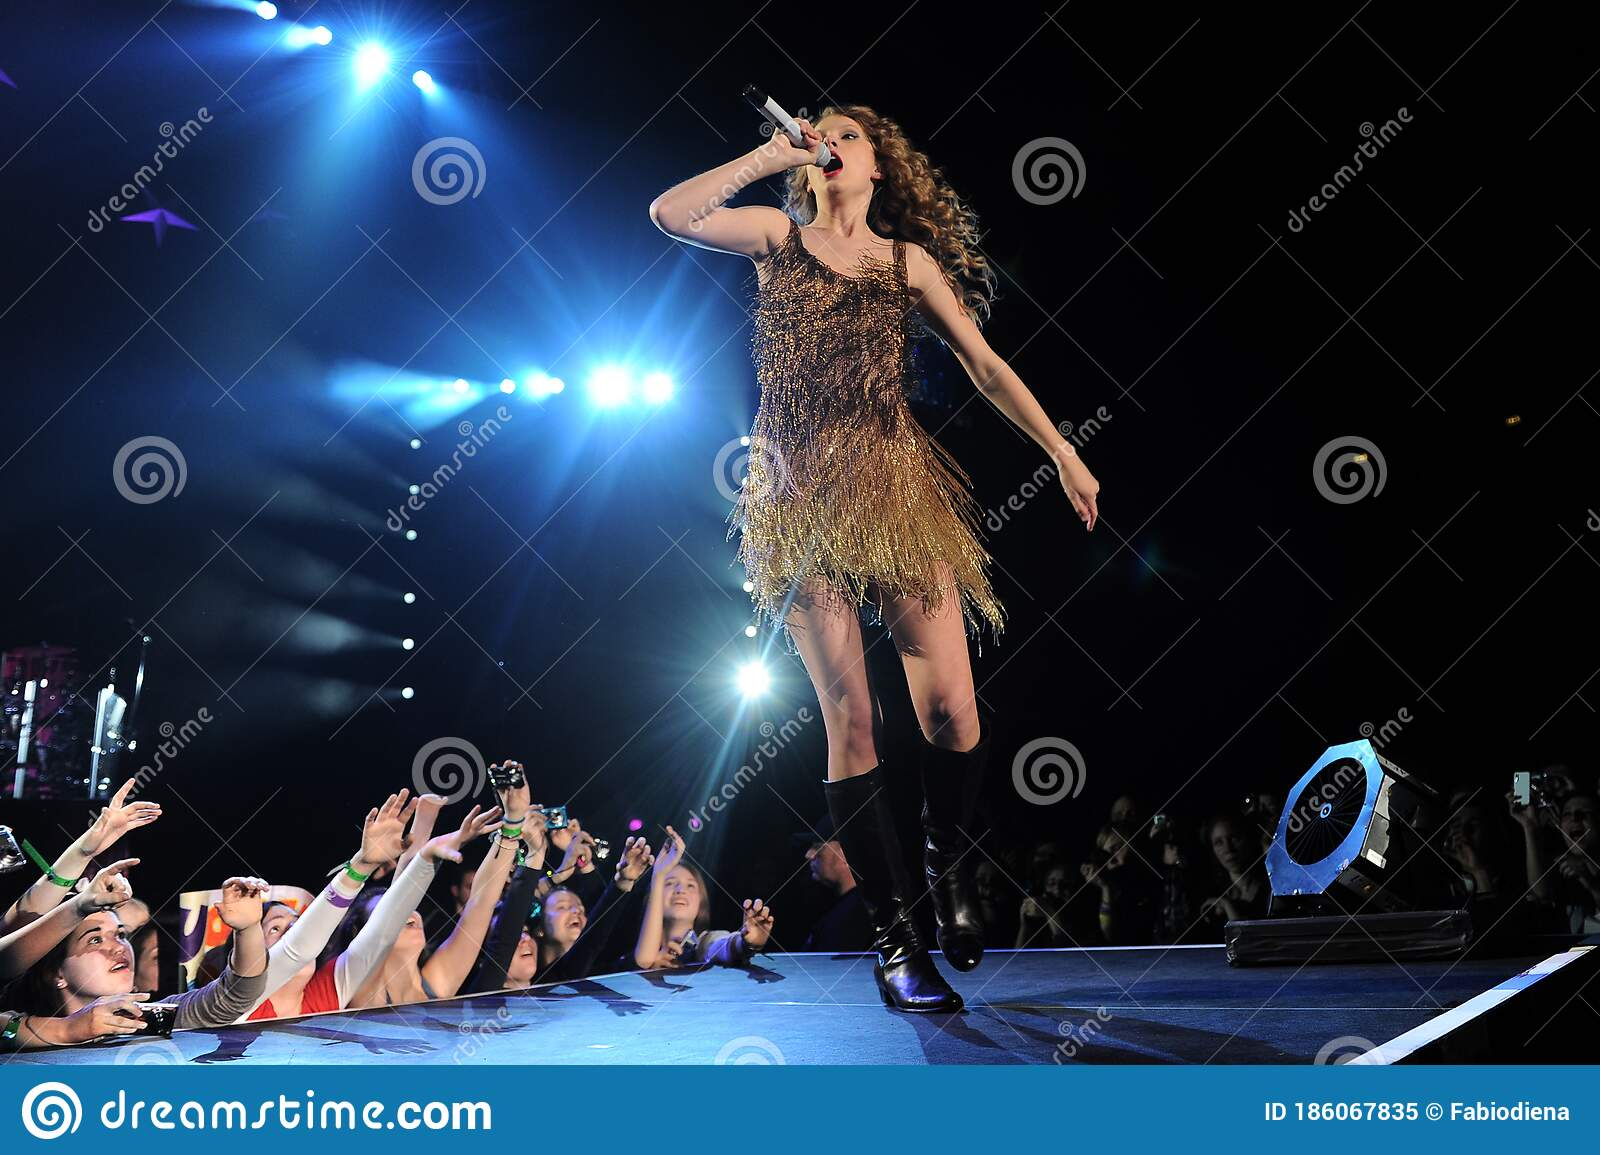 Taylor Swift During The Concert Editorial Image Image Of Entertainment Microphone 186067835